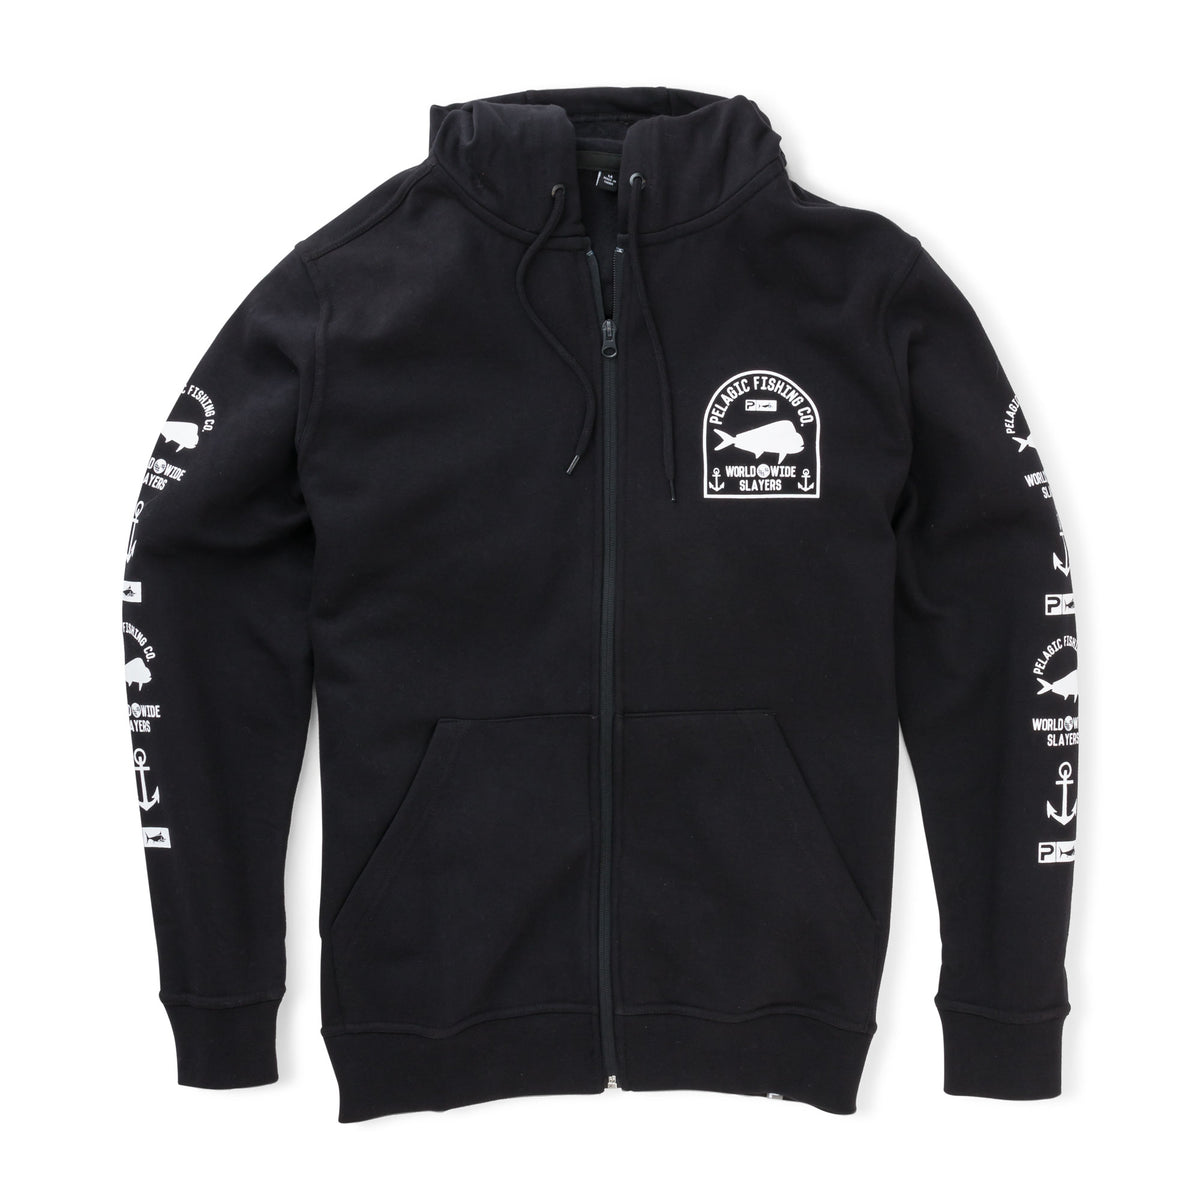 Worldwide Slayer Zip Hoody Big Image - 2